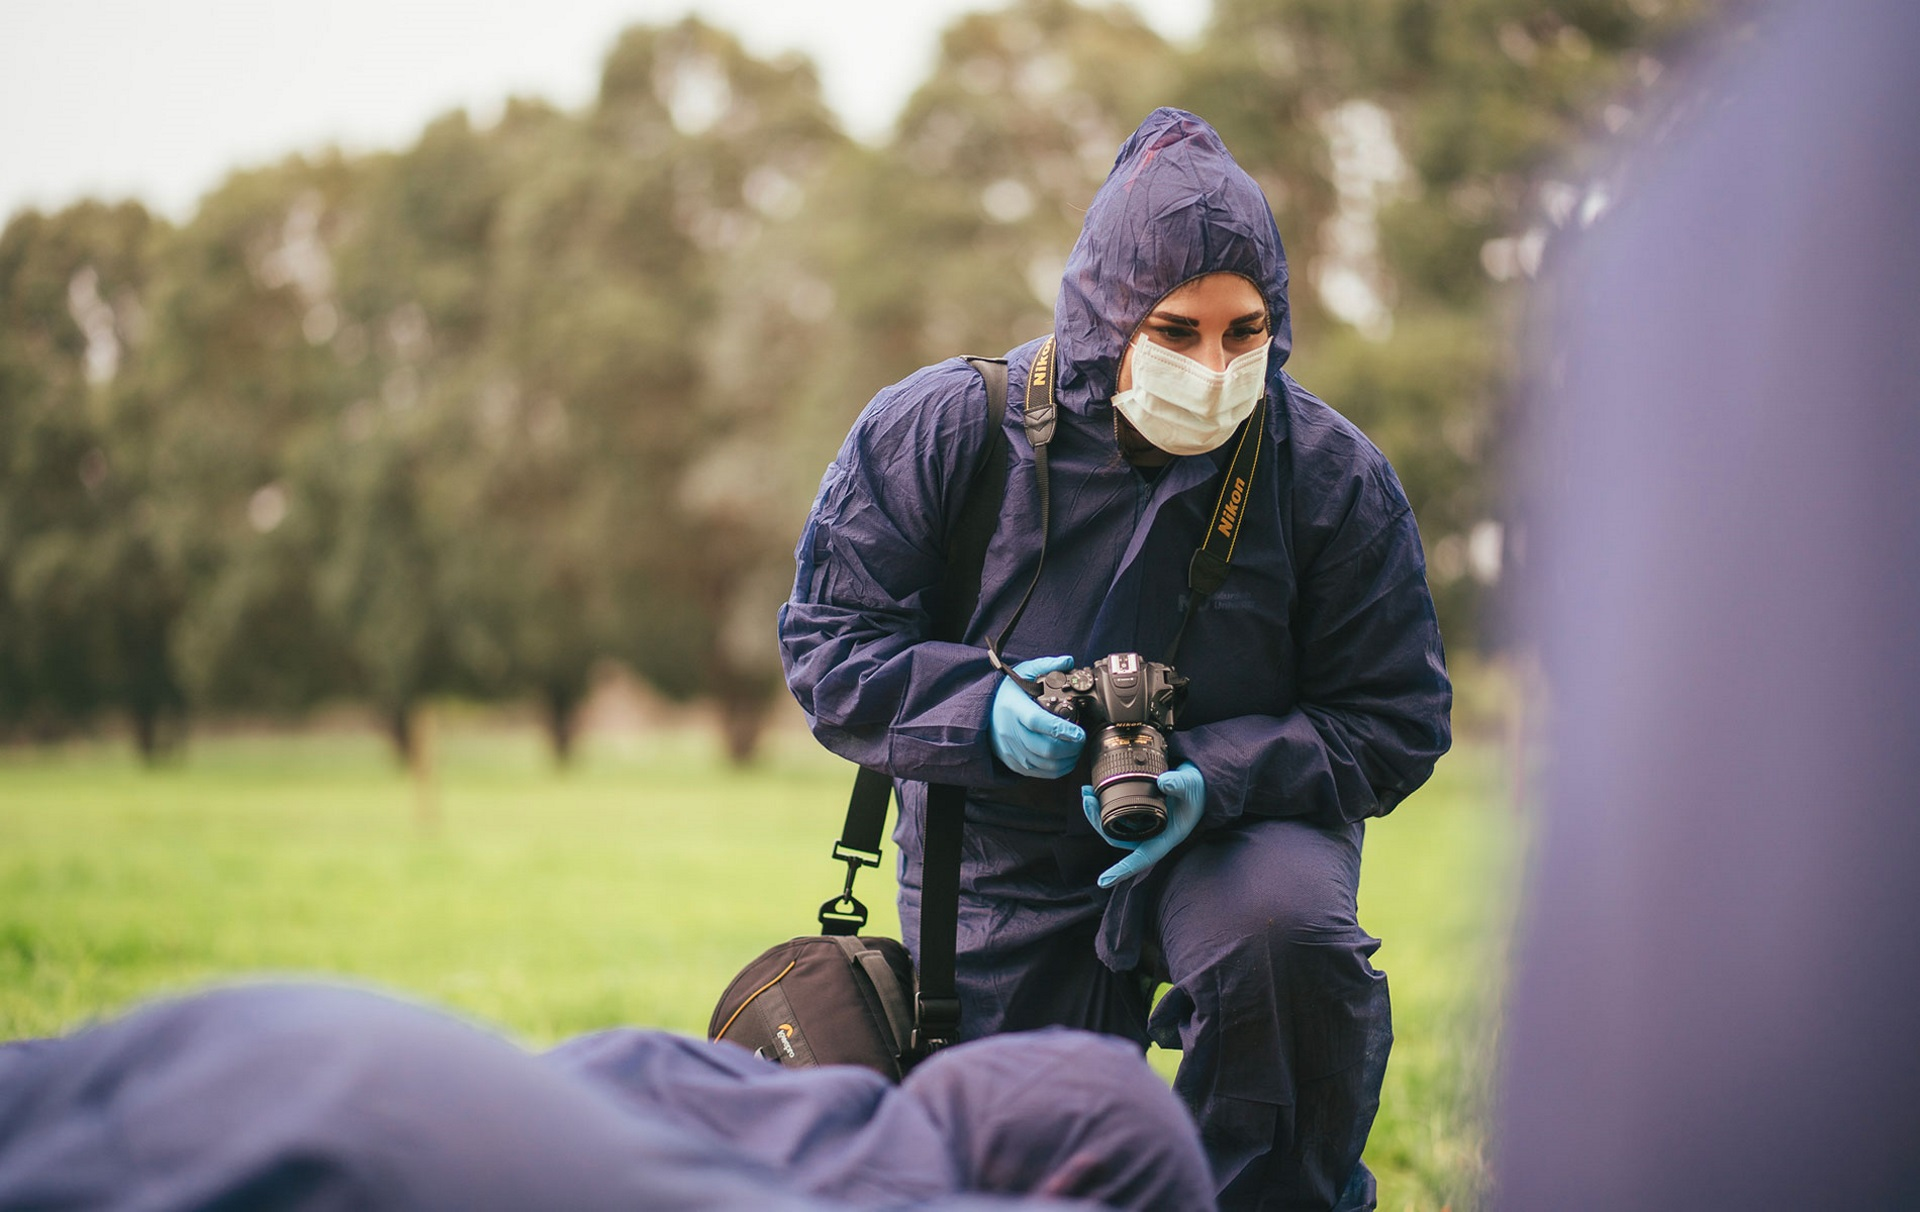 Rebecca holding a camera and wearing coveralls at a crime scene